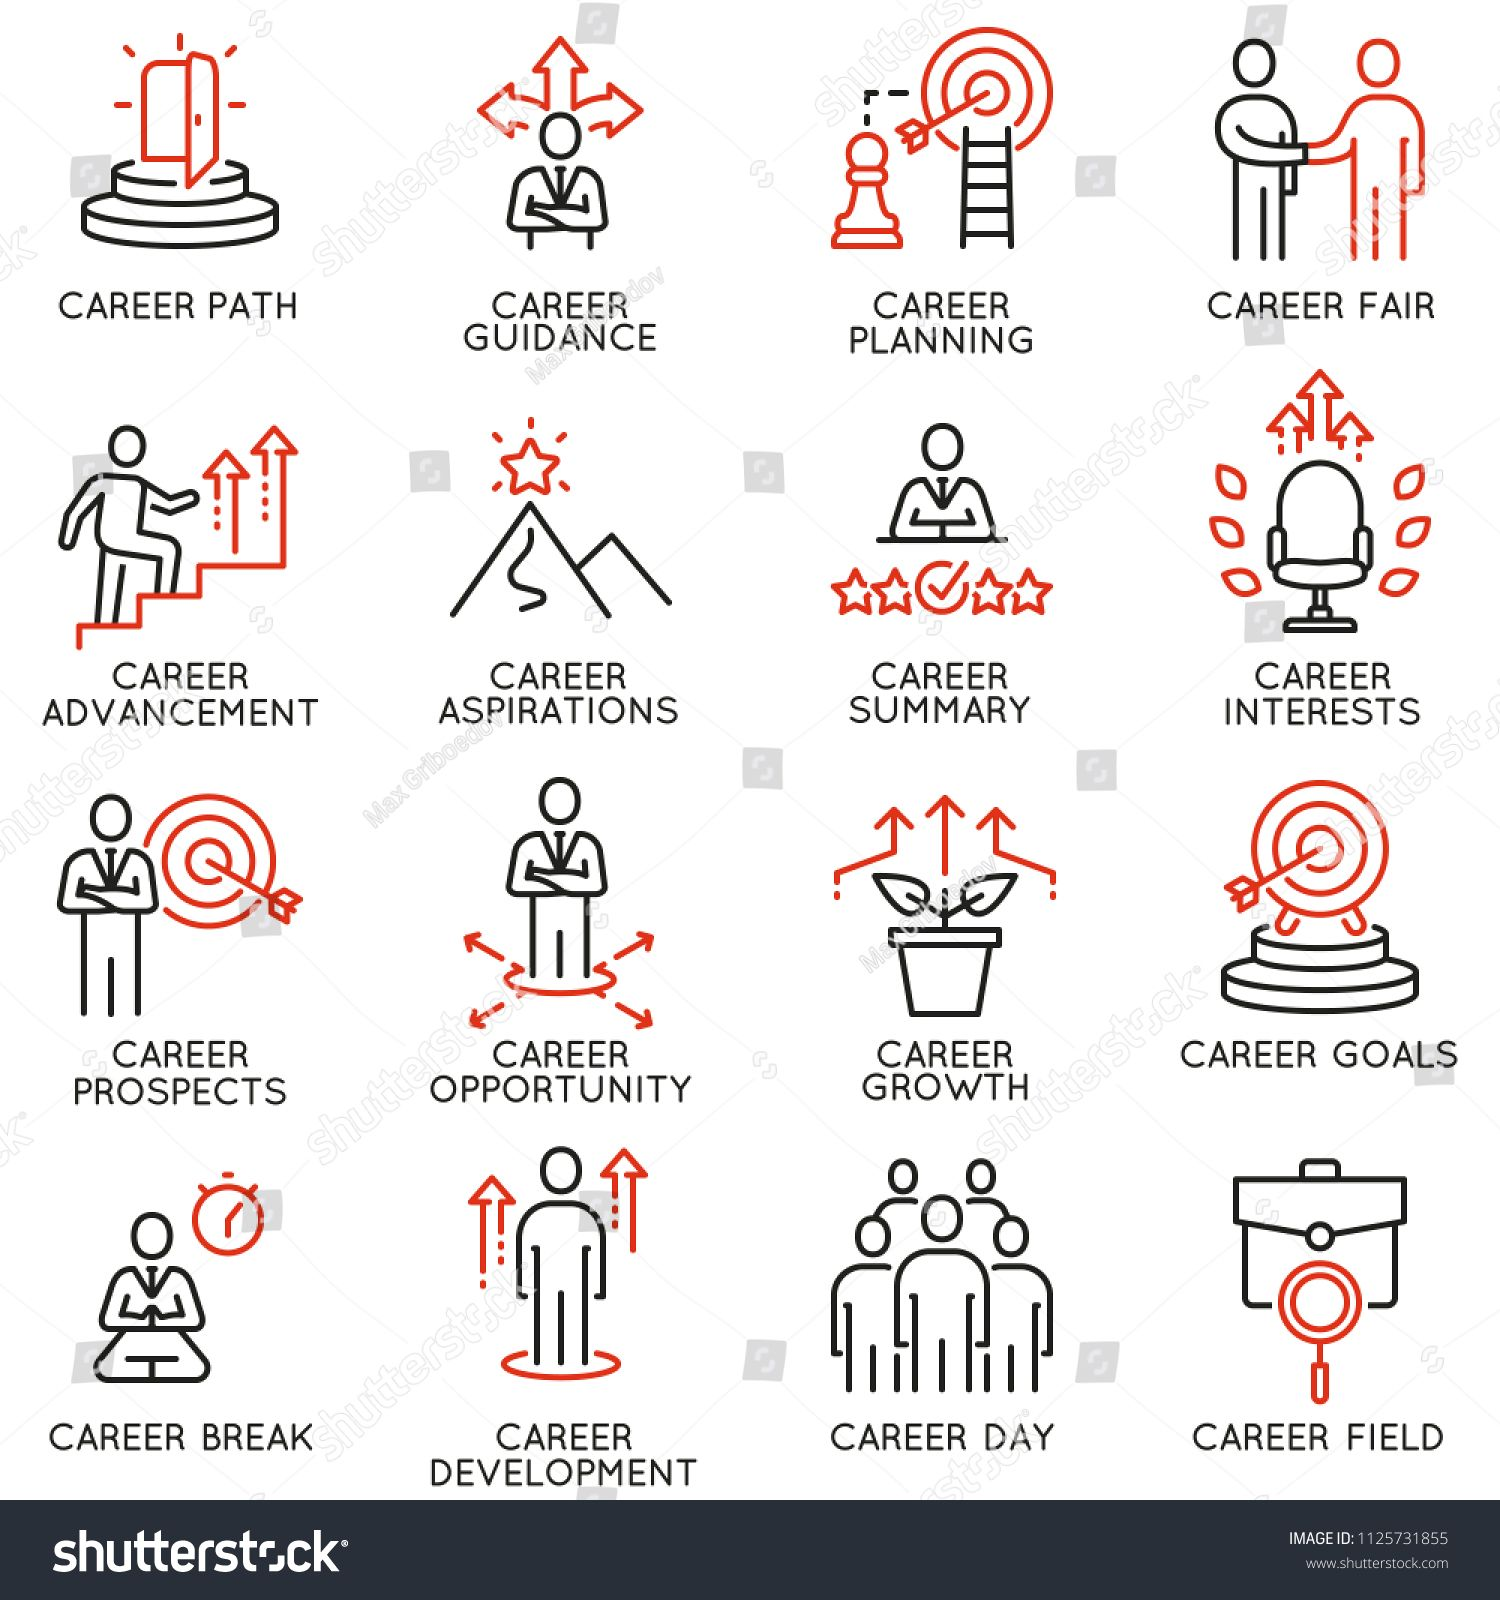 Pin On Game Design Characters